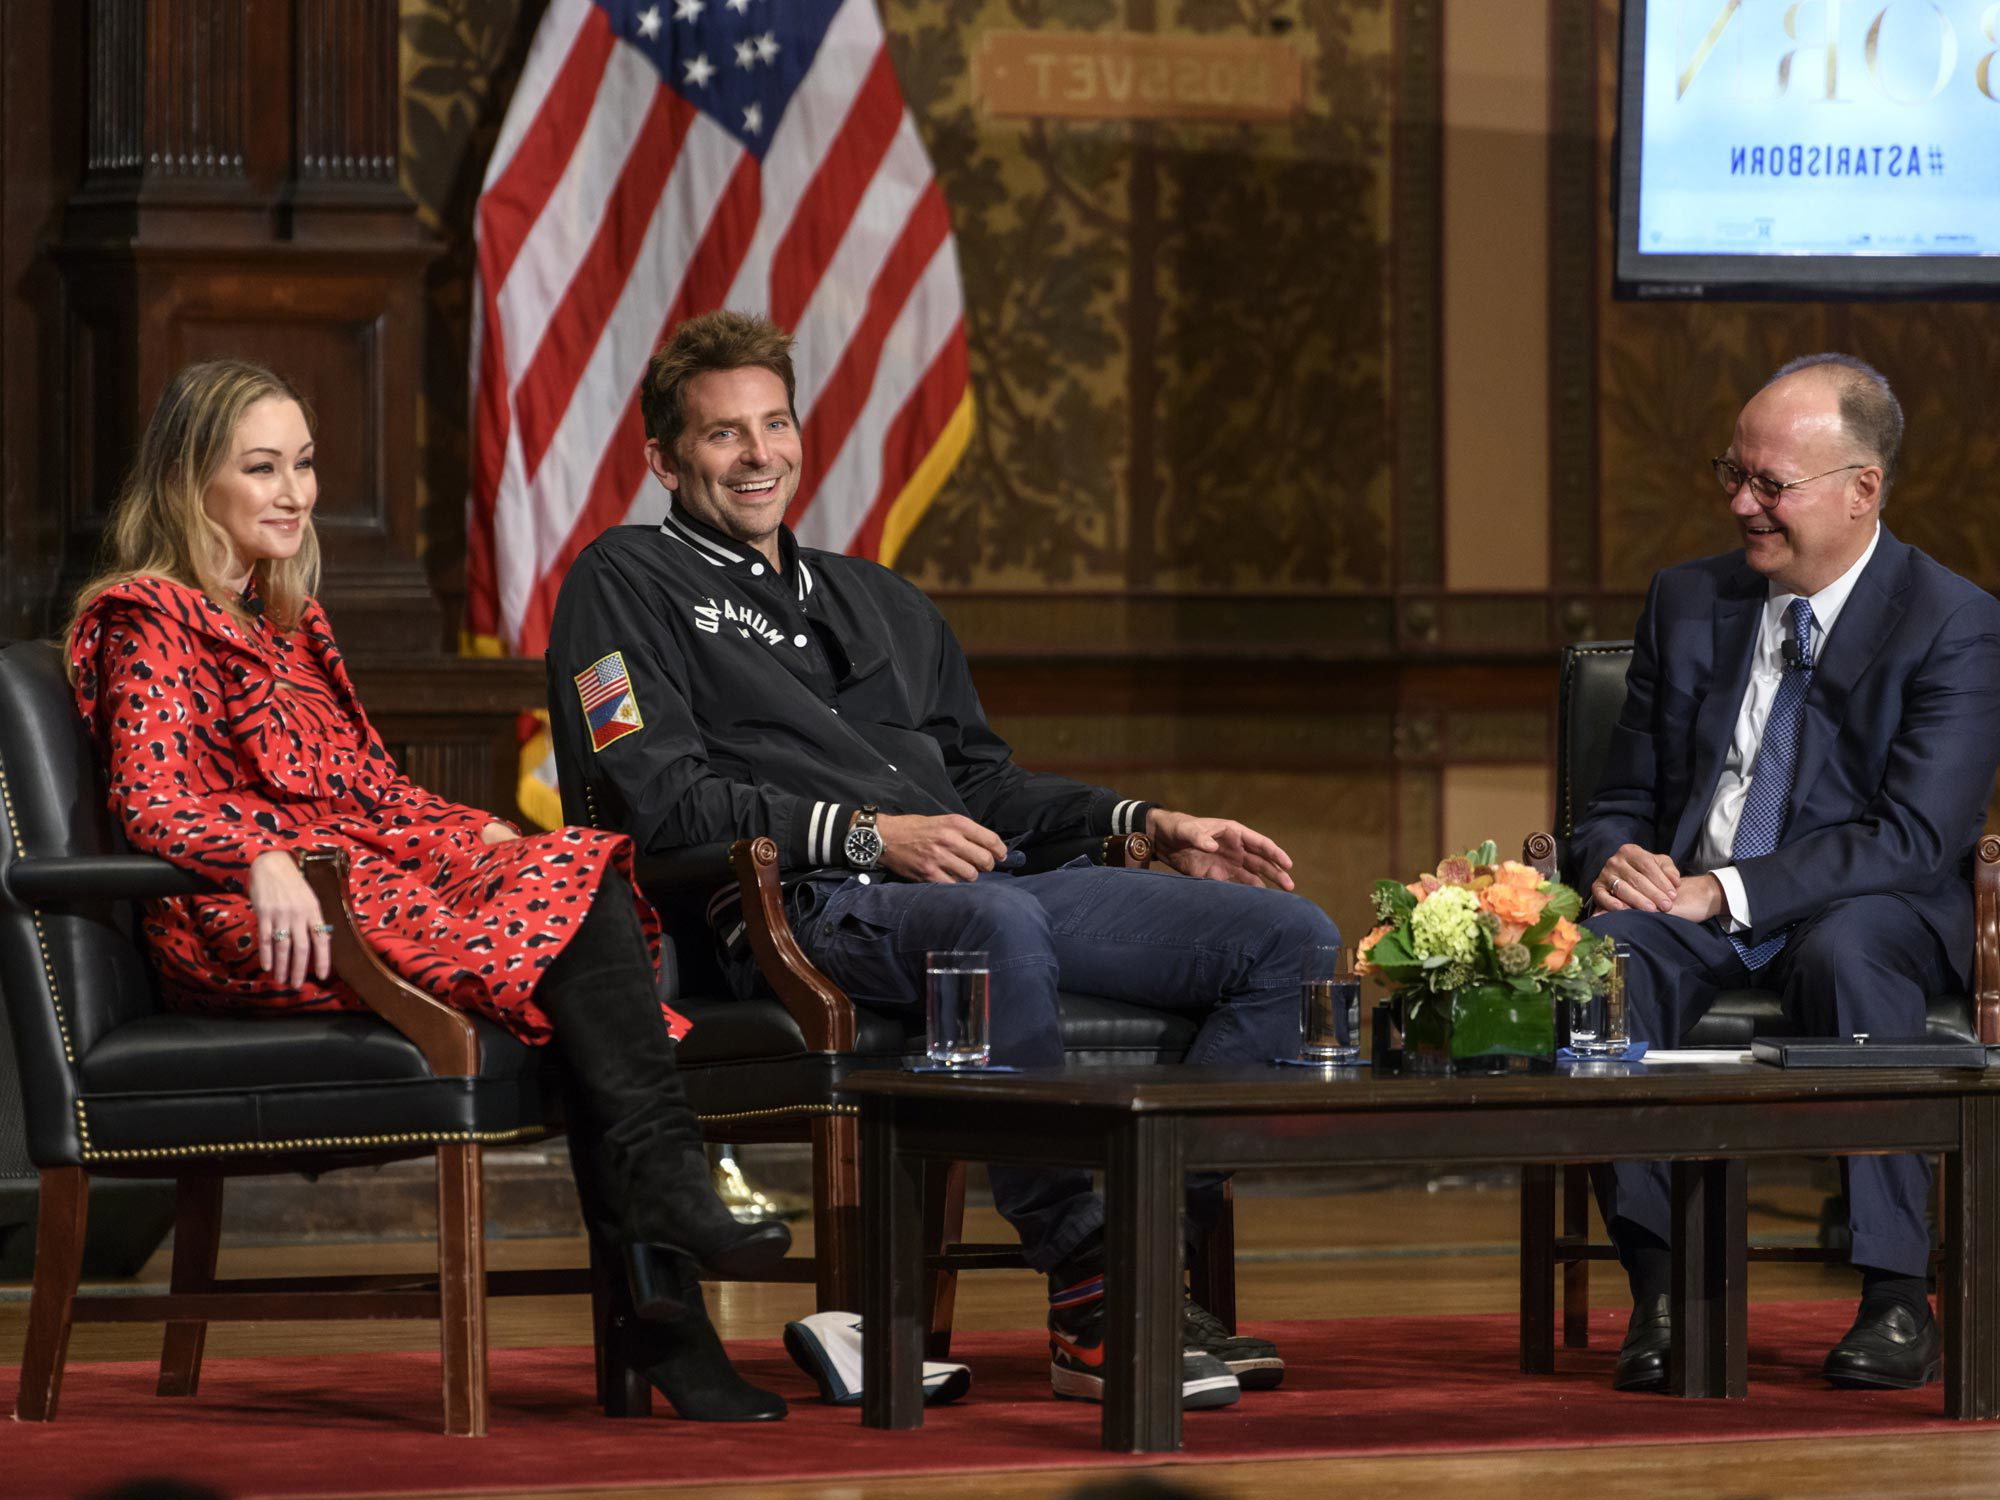 Bradley Cooper speaks in Gaston Hall